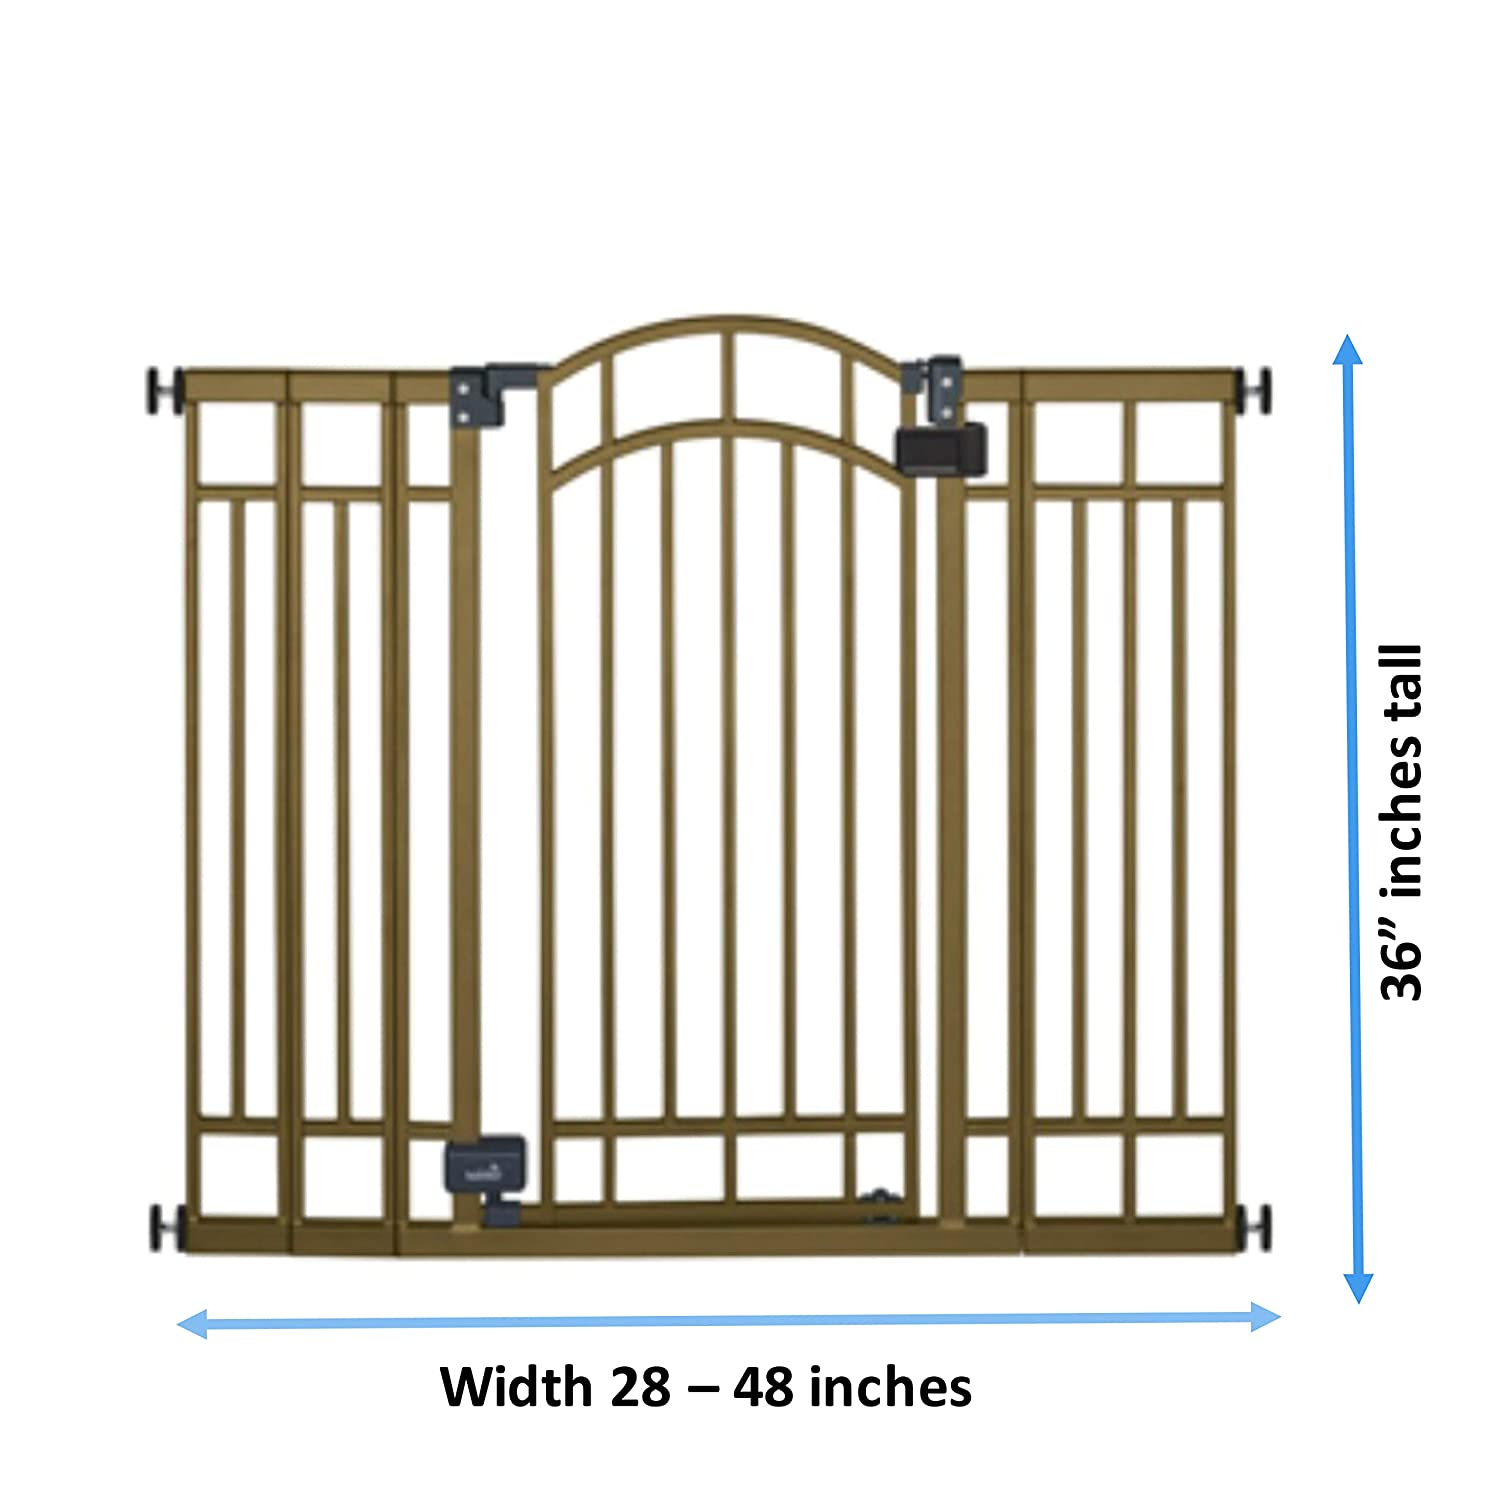 """36"""" inch Extra Tall Walk-Thru Metal Safety Gate - Expands 28"""" to 48"""" inches Wide Bronze Metal with Auto-Close Safety Feature"""